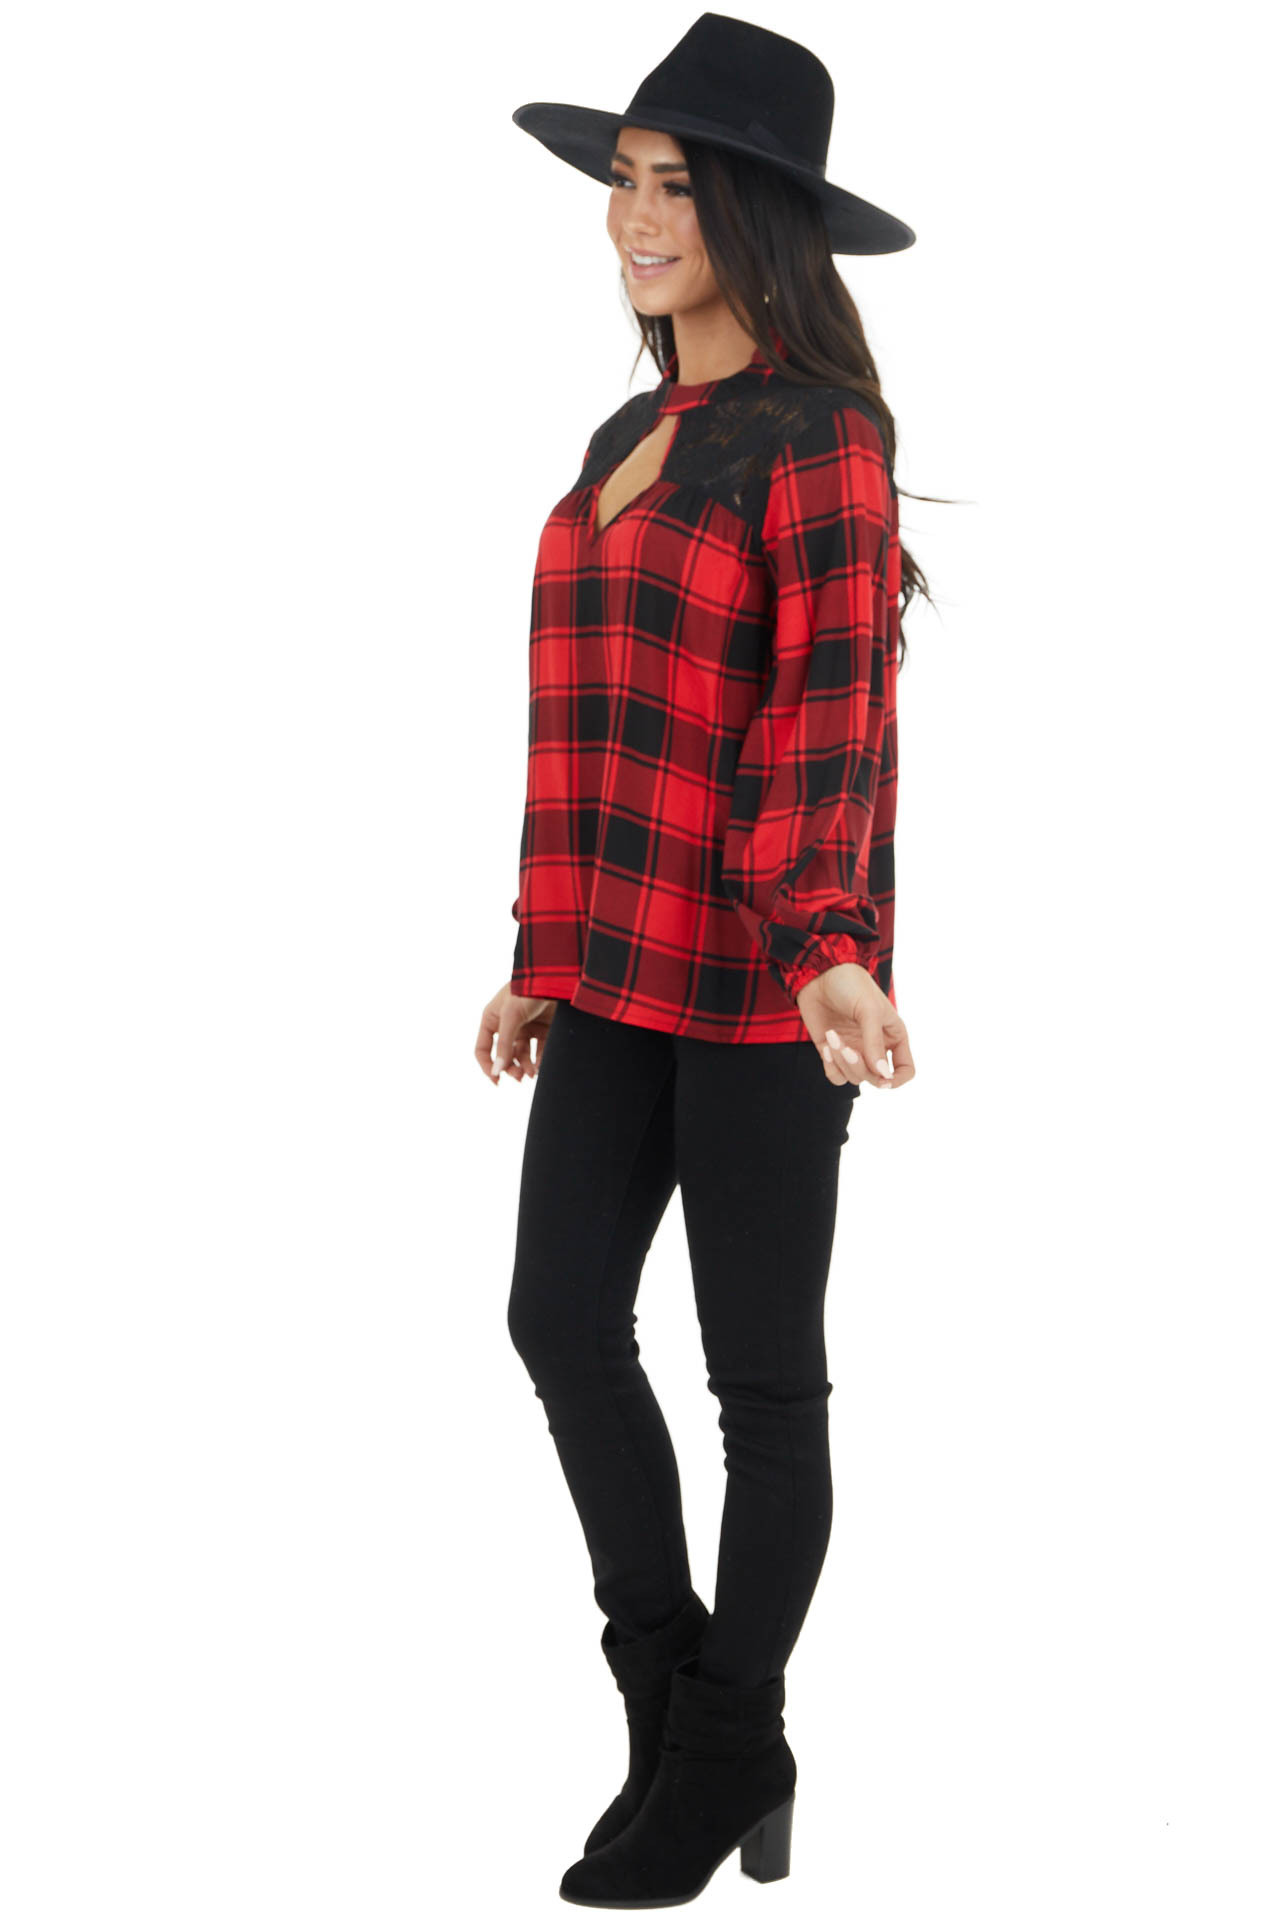 Lipstick Red and Black Buffalo Plaid Bubble Sleeve Top